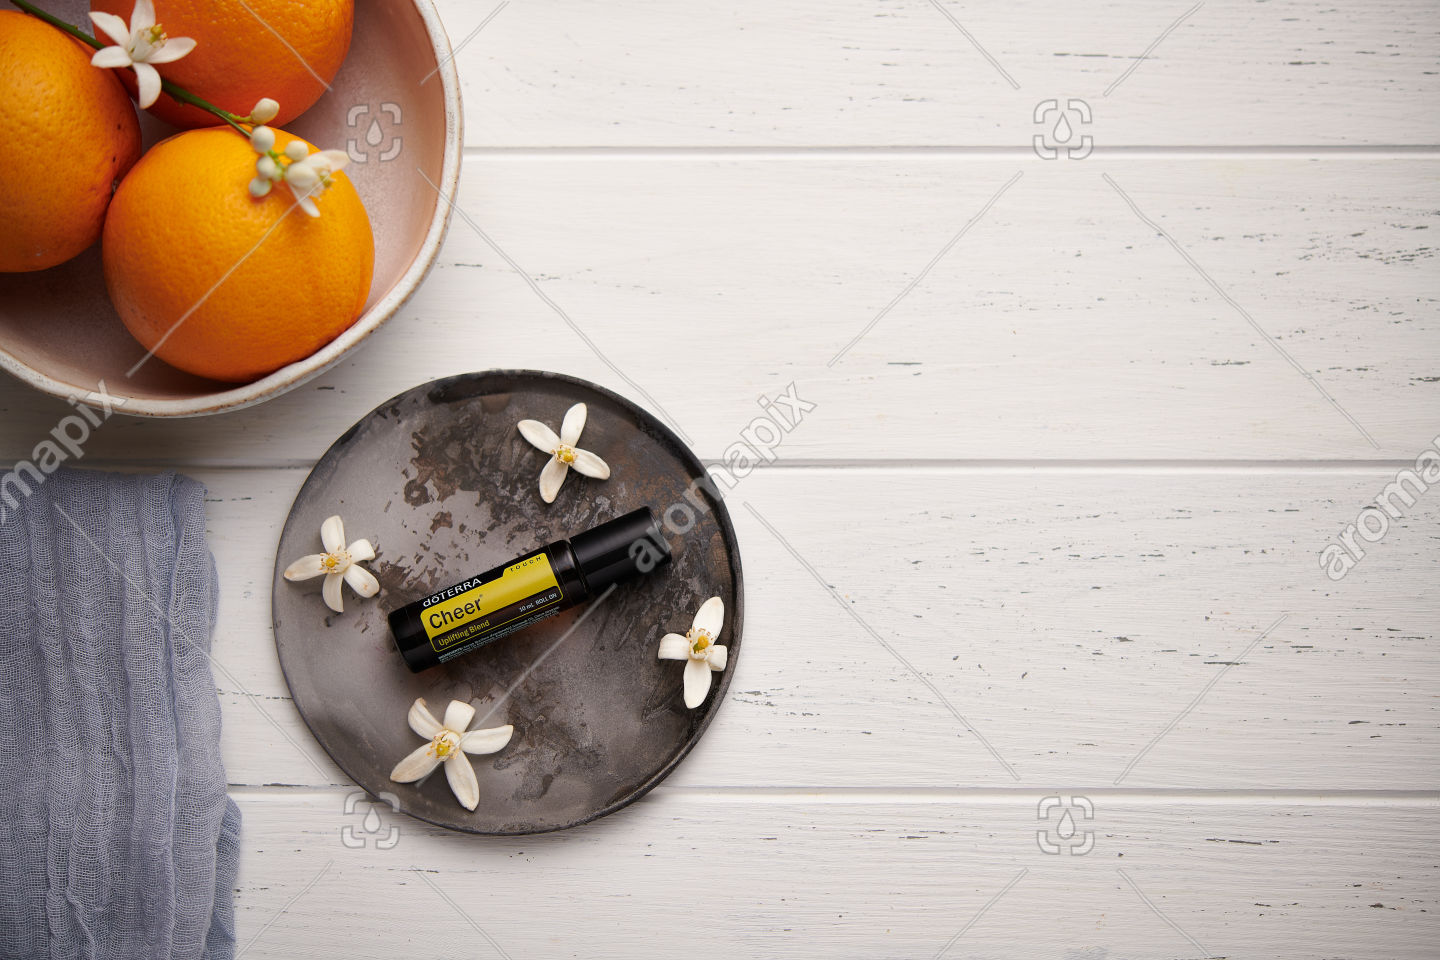 doTERRA Cheer Touch with orange blossoms on white